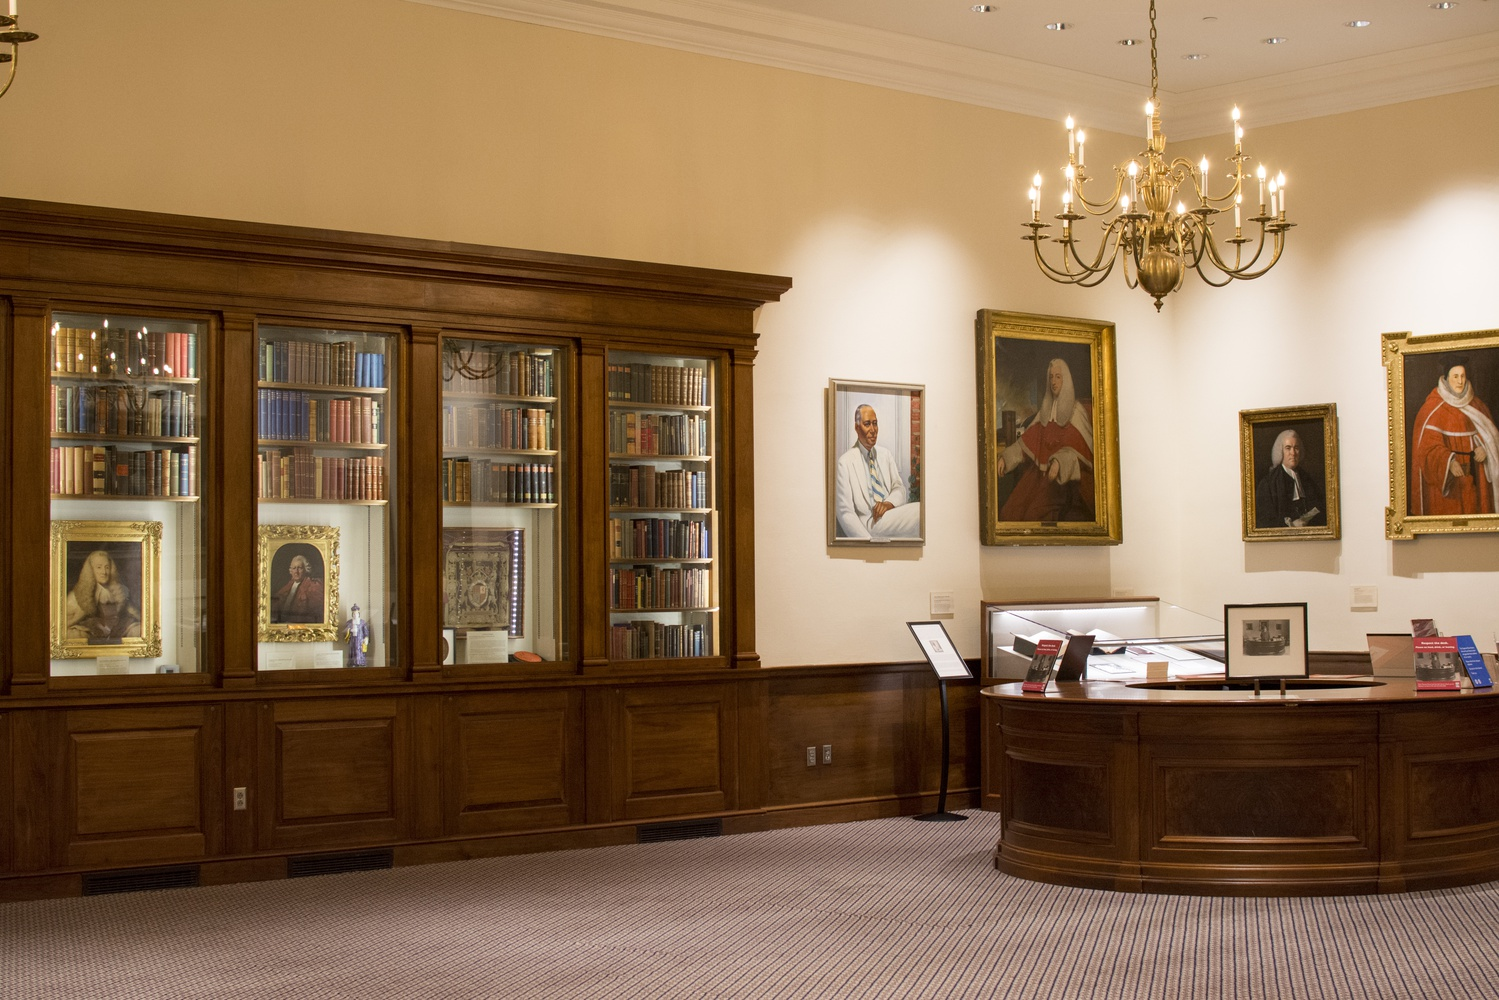 The Casperson Room is located in the Harvard Law School Library.